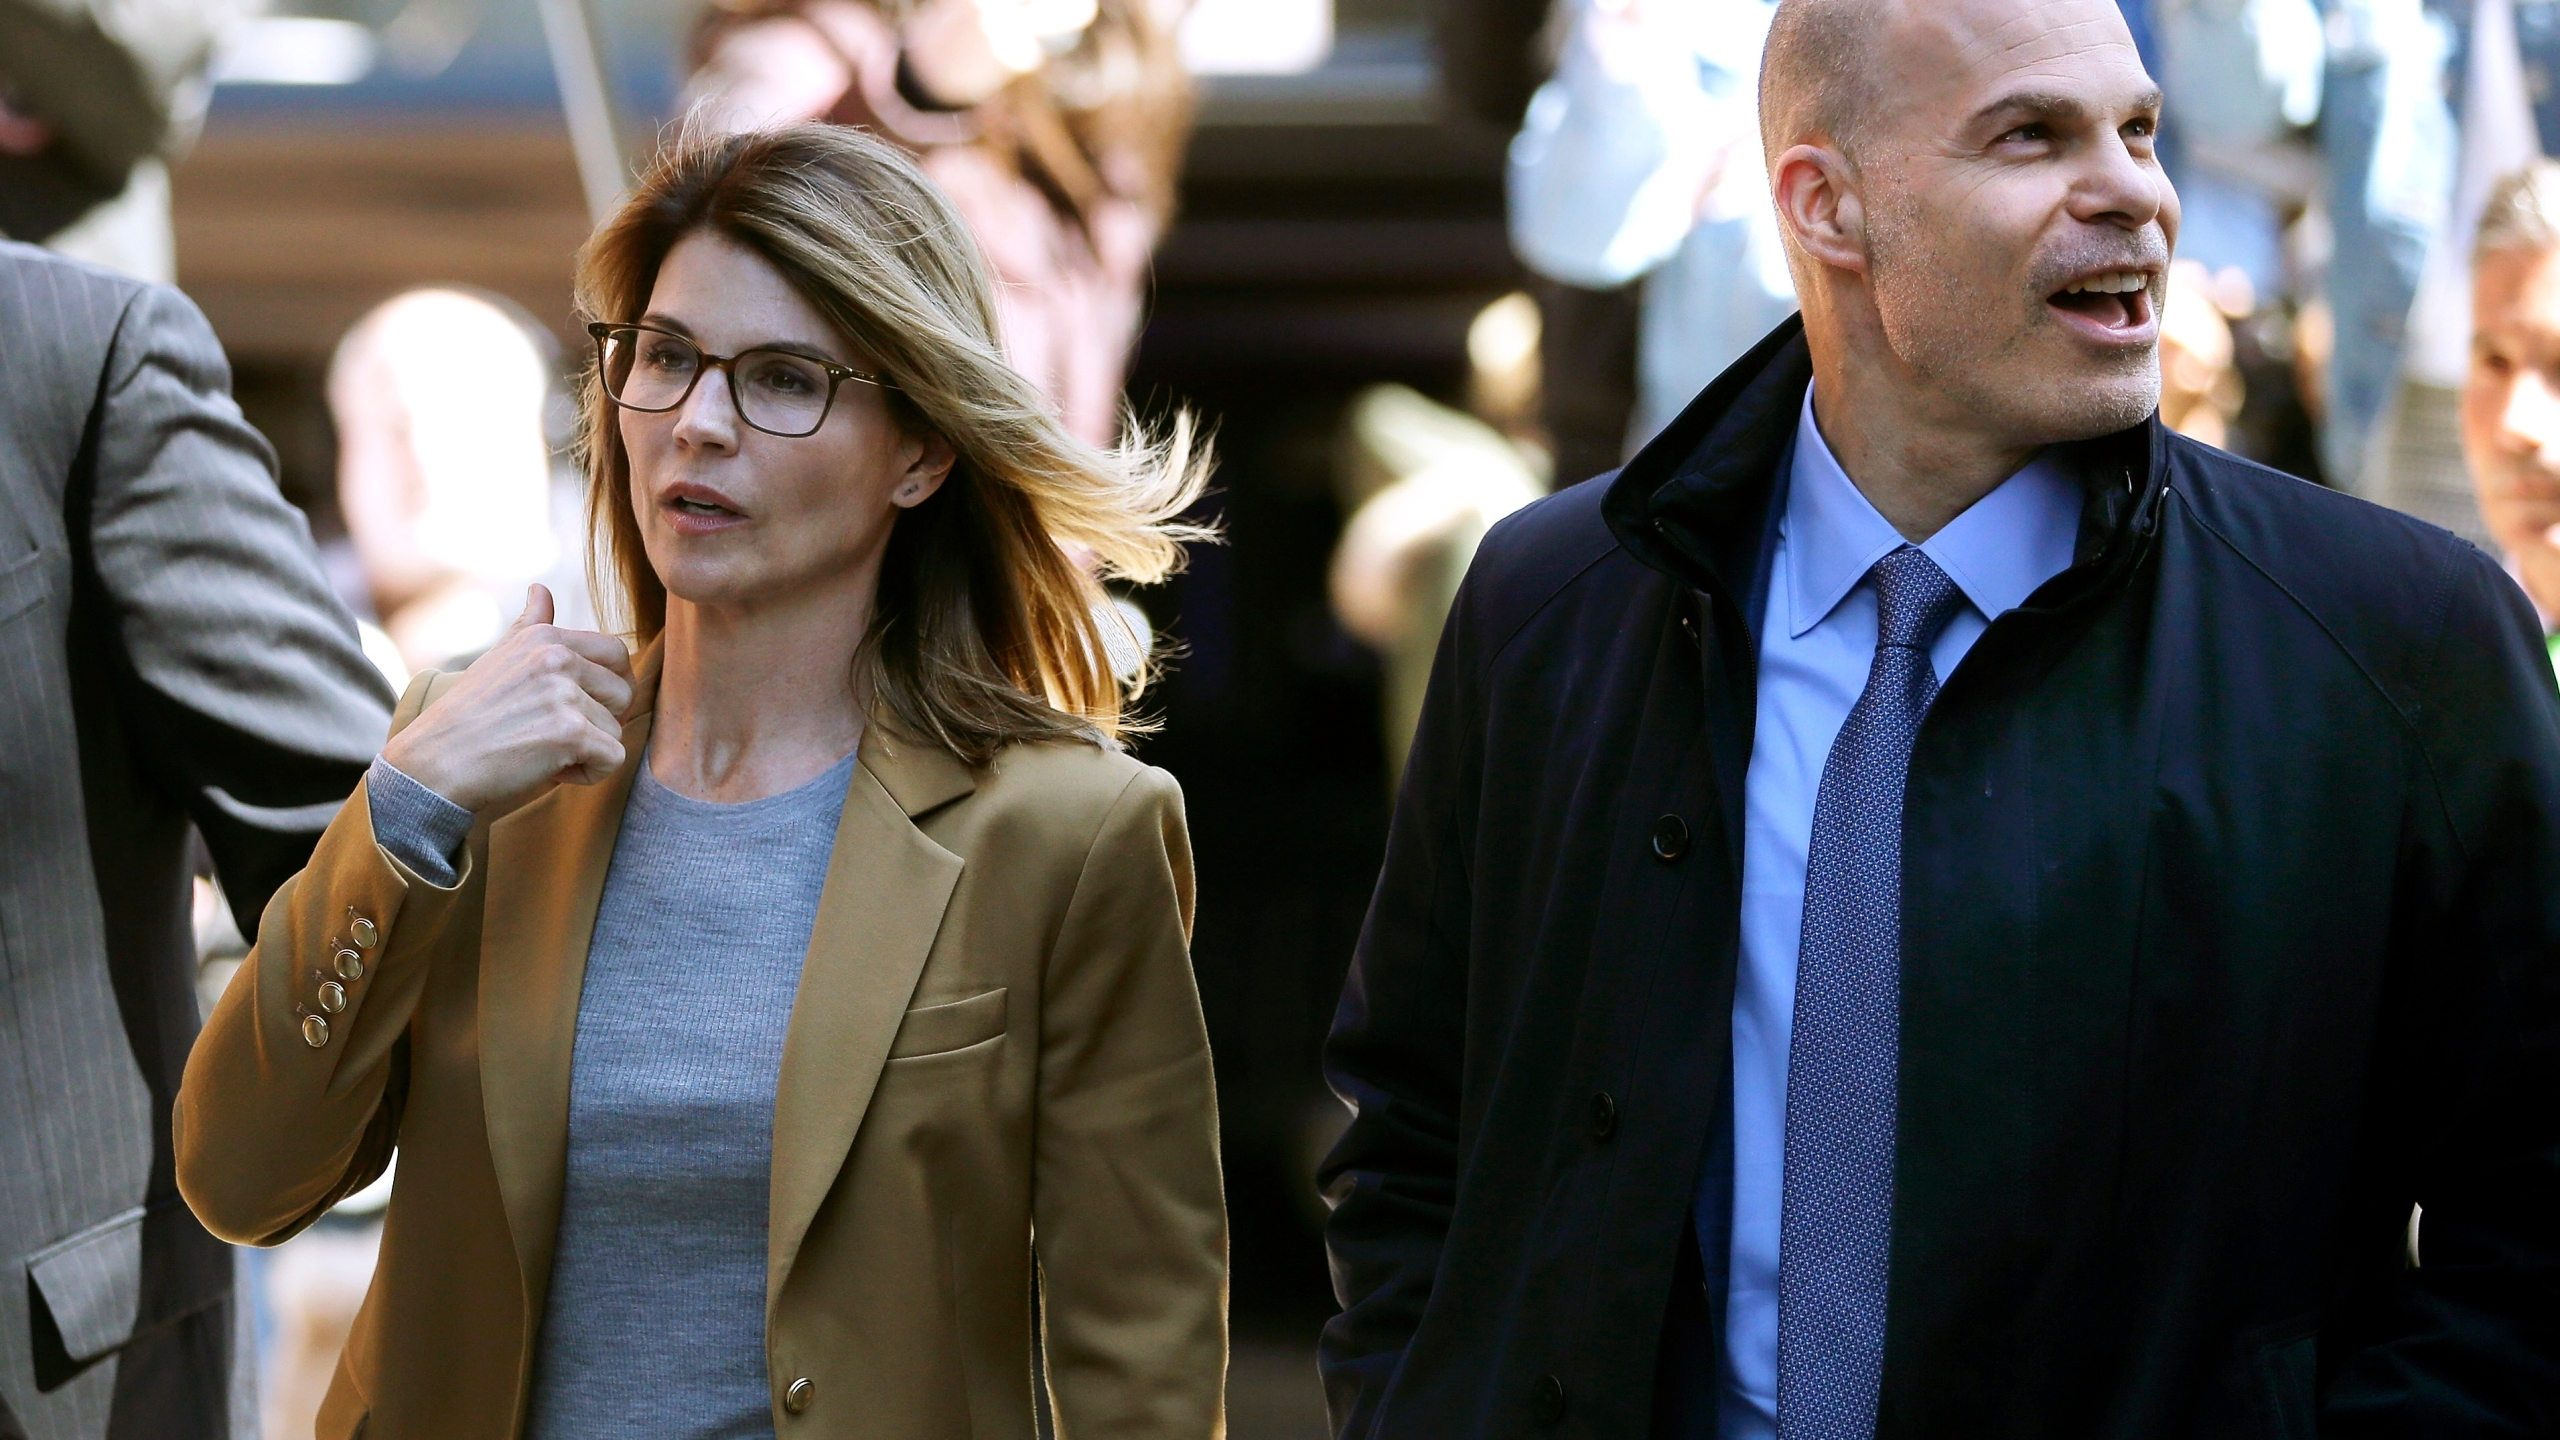 Lori Loughlin, Sean Berkowitz